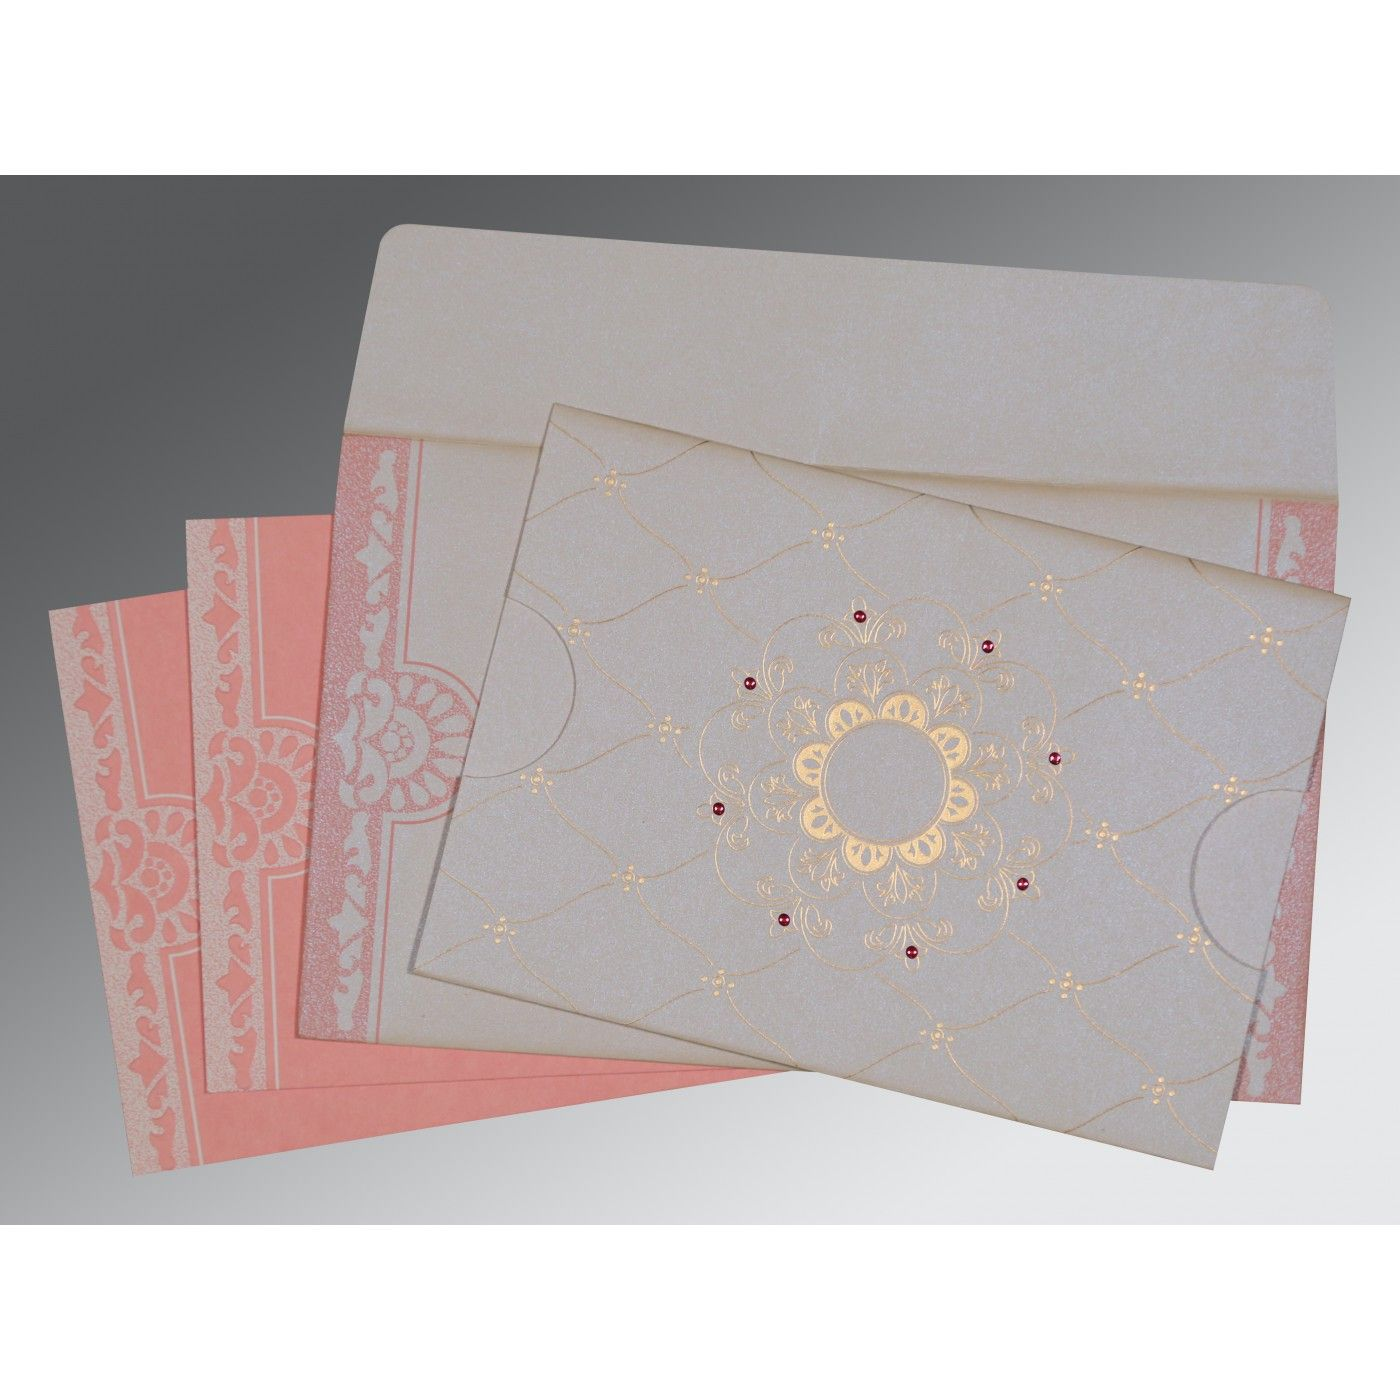 OFF-WHITE PINK SHIMMERY FLORAL THEMED - SCREEN PRINTED WEDDING CARD : CS-8227M - IndianWeddingCards